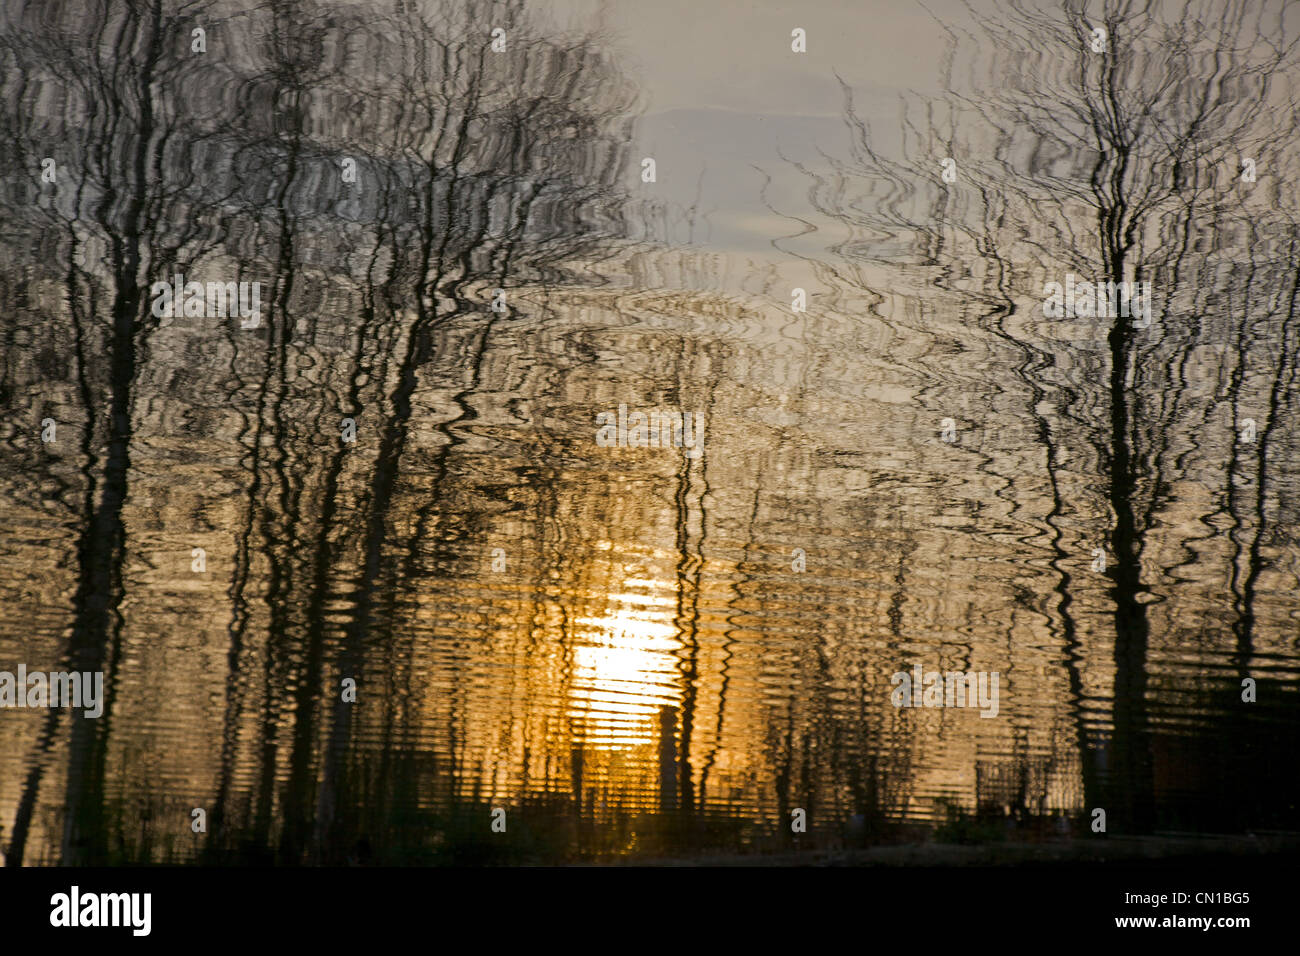 Reflections in the Grand Union canal at sunset, Hertfordshire, England - Stock Image